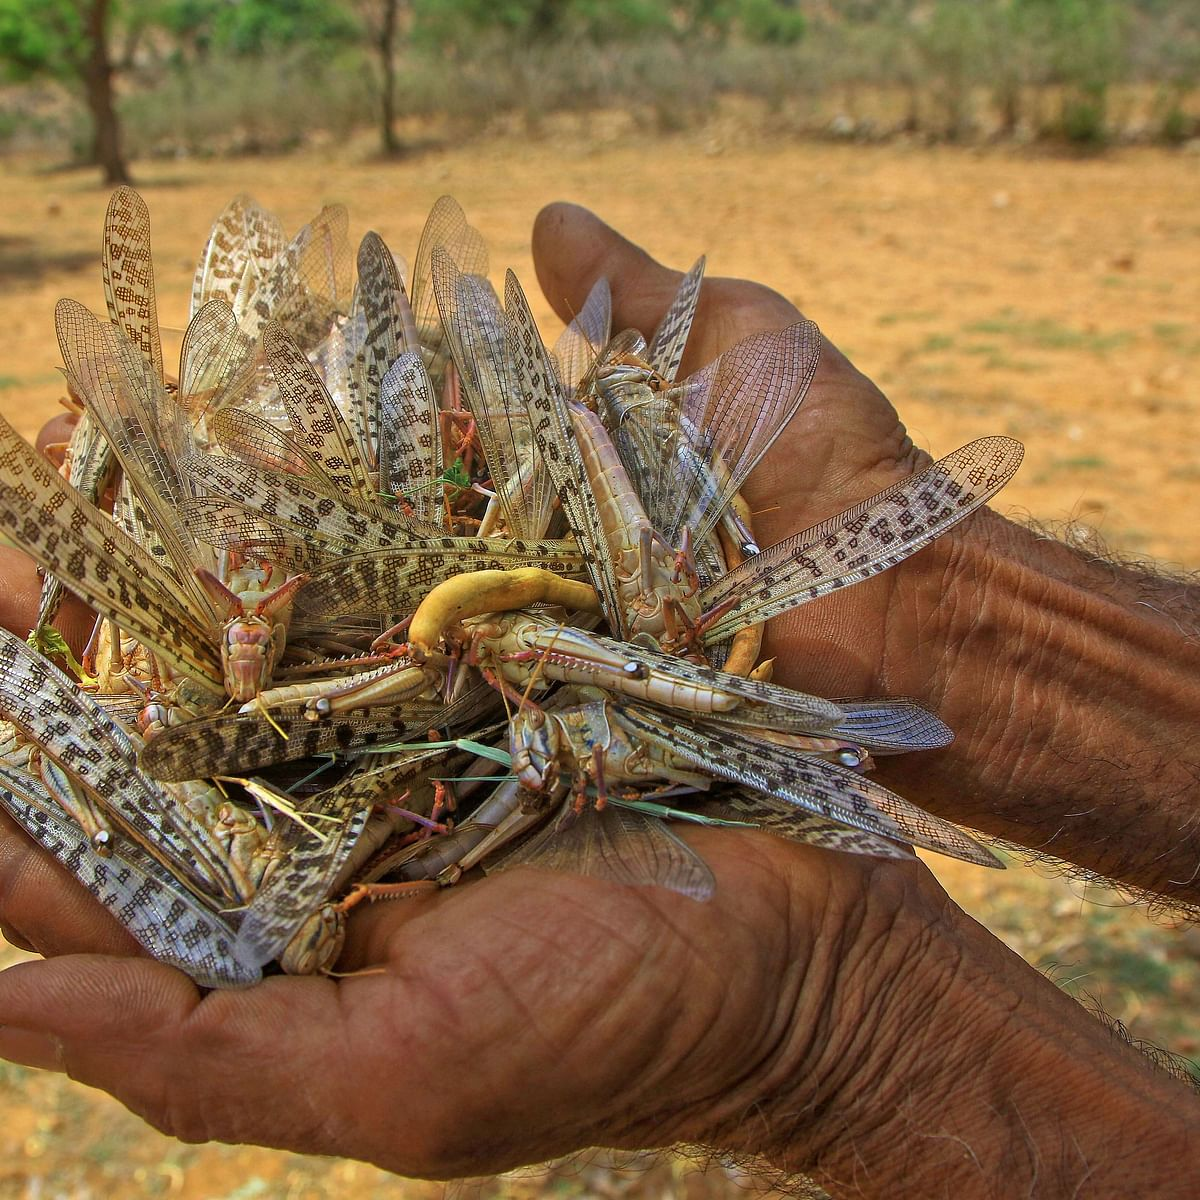 In country's worst case of locust infestation in three decades, Palghar is now on high alert